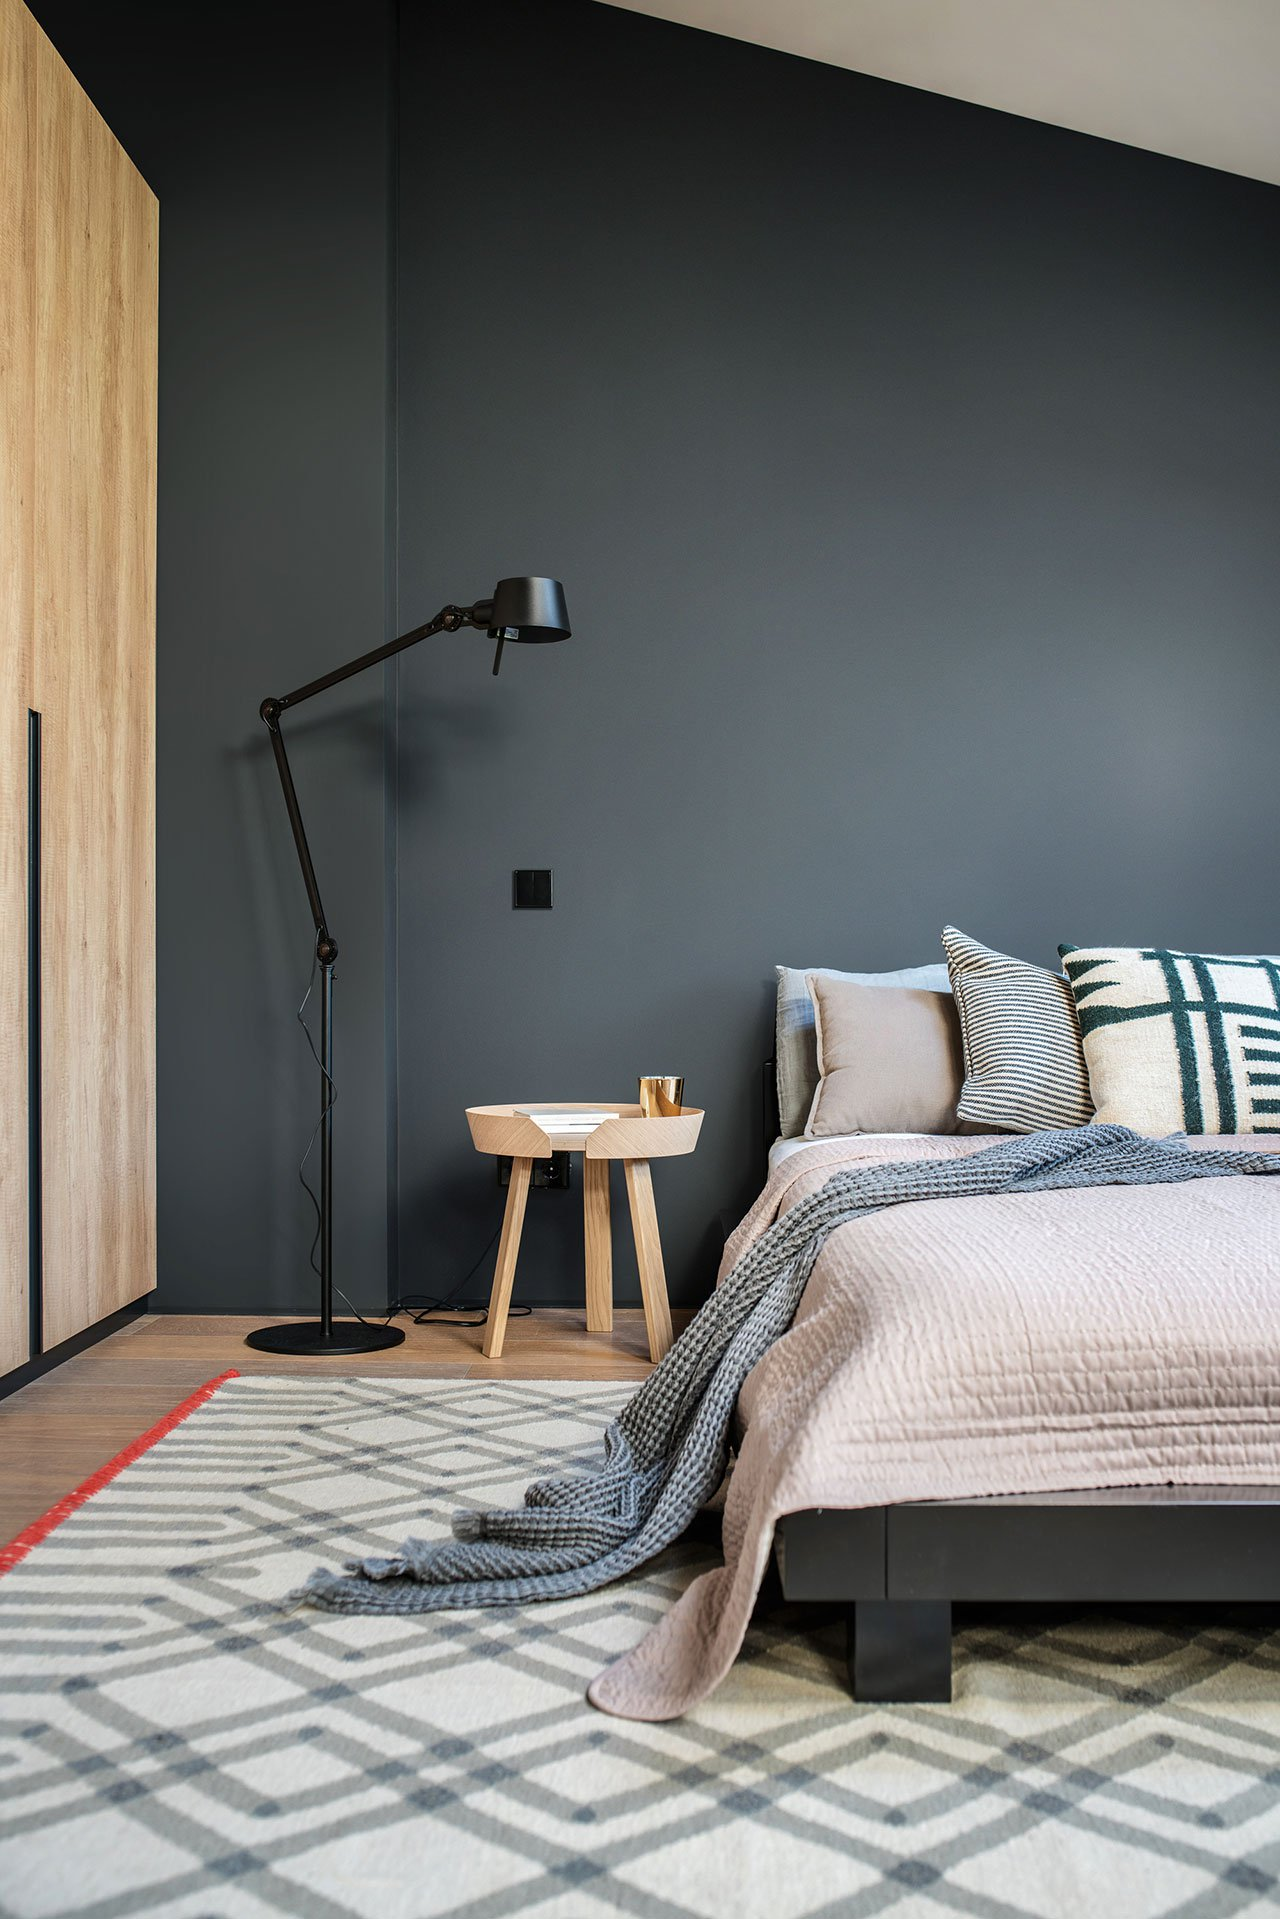 The guest bedroom is a comfy attic space with a large bed and a wardrobe, minimalist yet catchy furniture is great